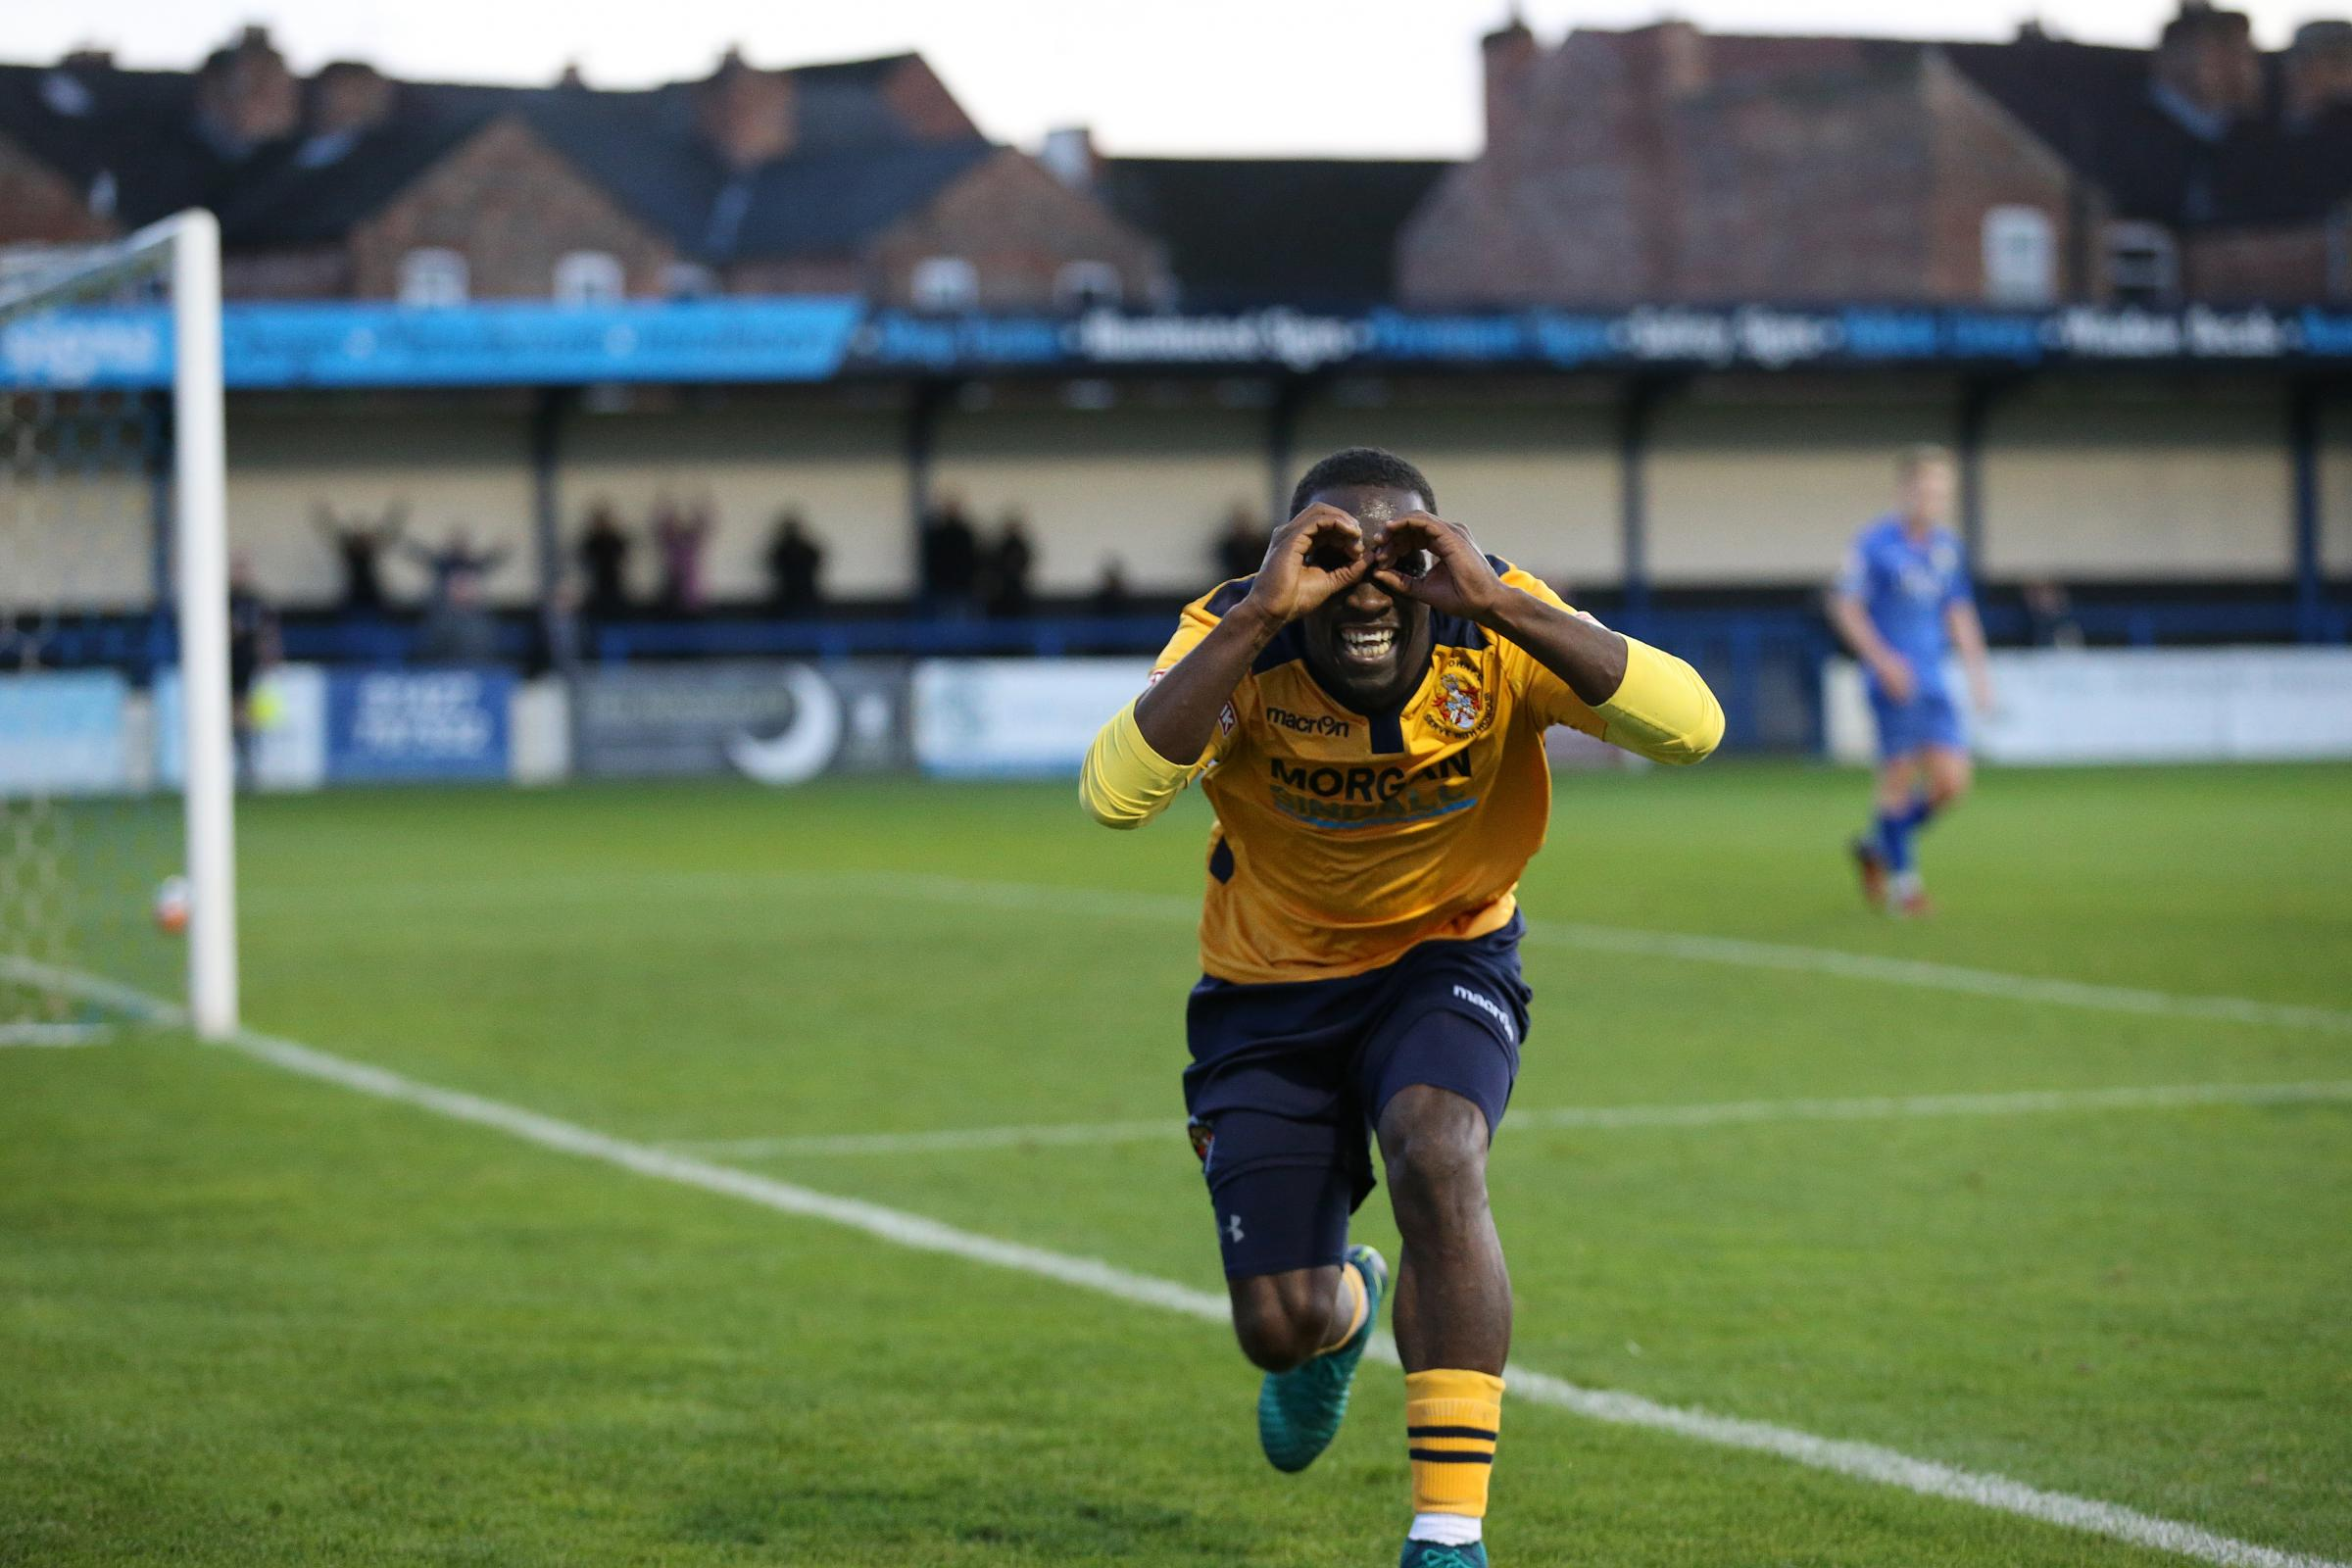 Slough Town forward Manny Williams celebrates his goal in the 6-0 FA Cup win at Gainsborough Trinity on Saturday. PHOTO: Gary House Photography.